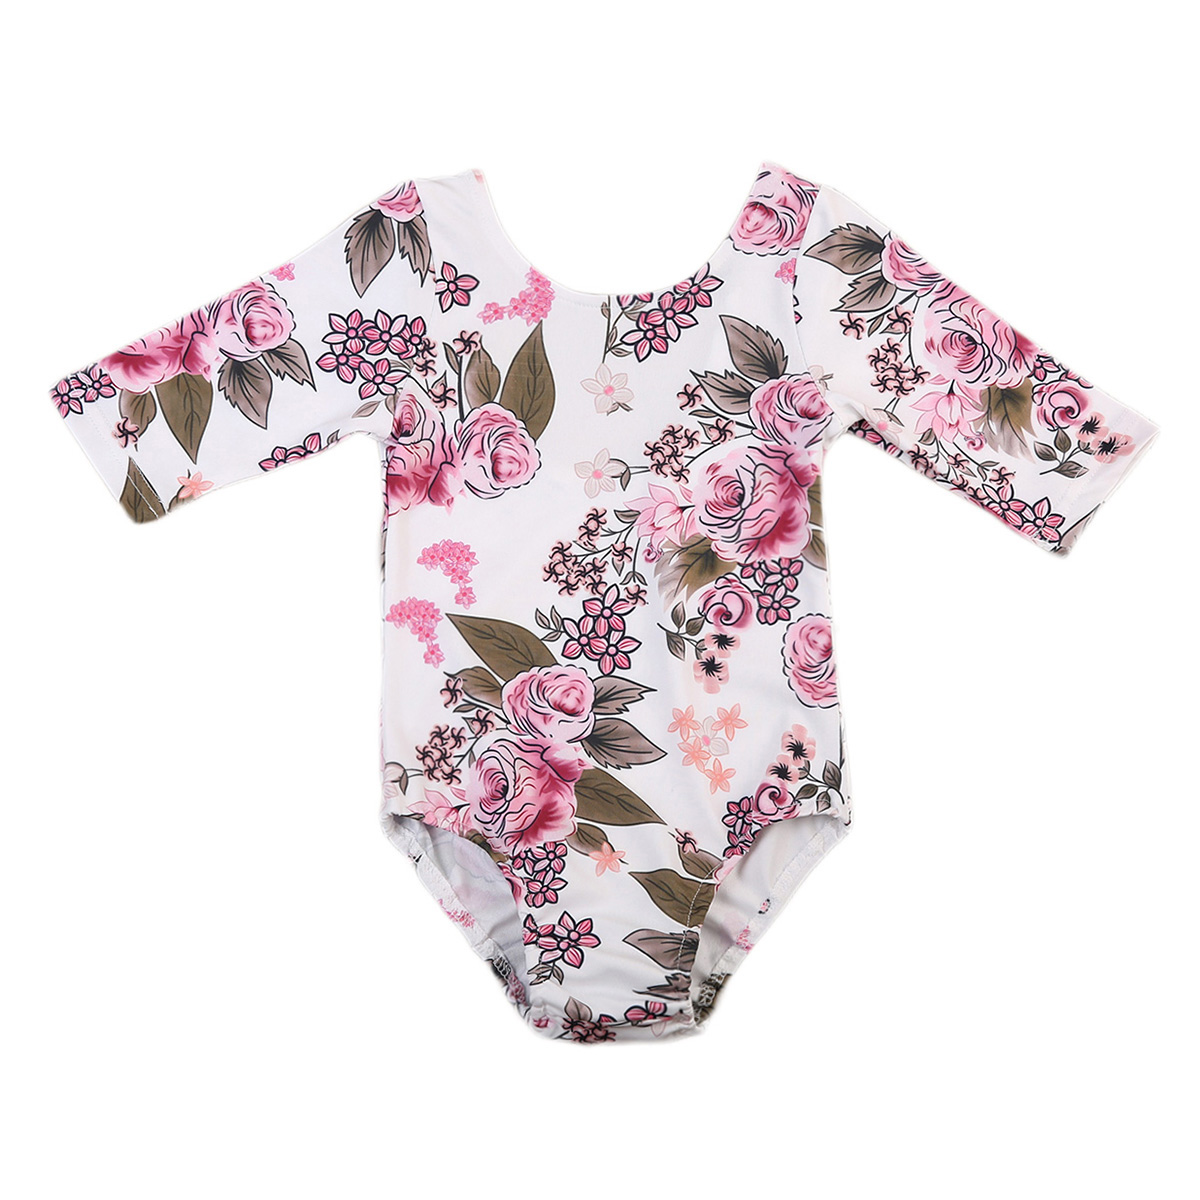 Kids Baby Girls Toddler Long Sleeve Romper Jumpsuit Clothes Outfits Top Rompers